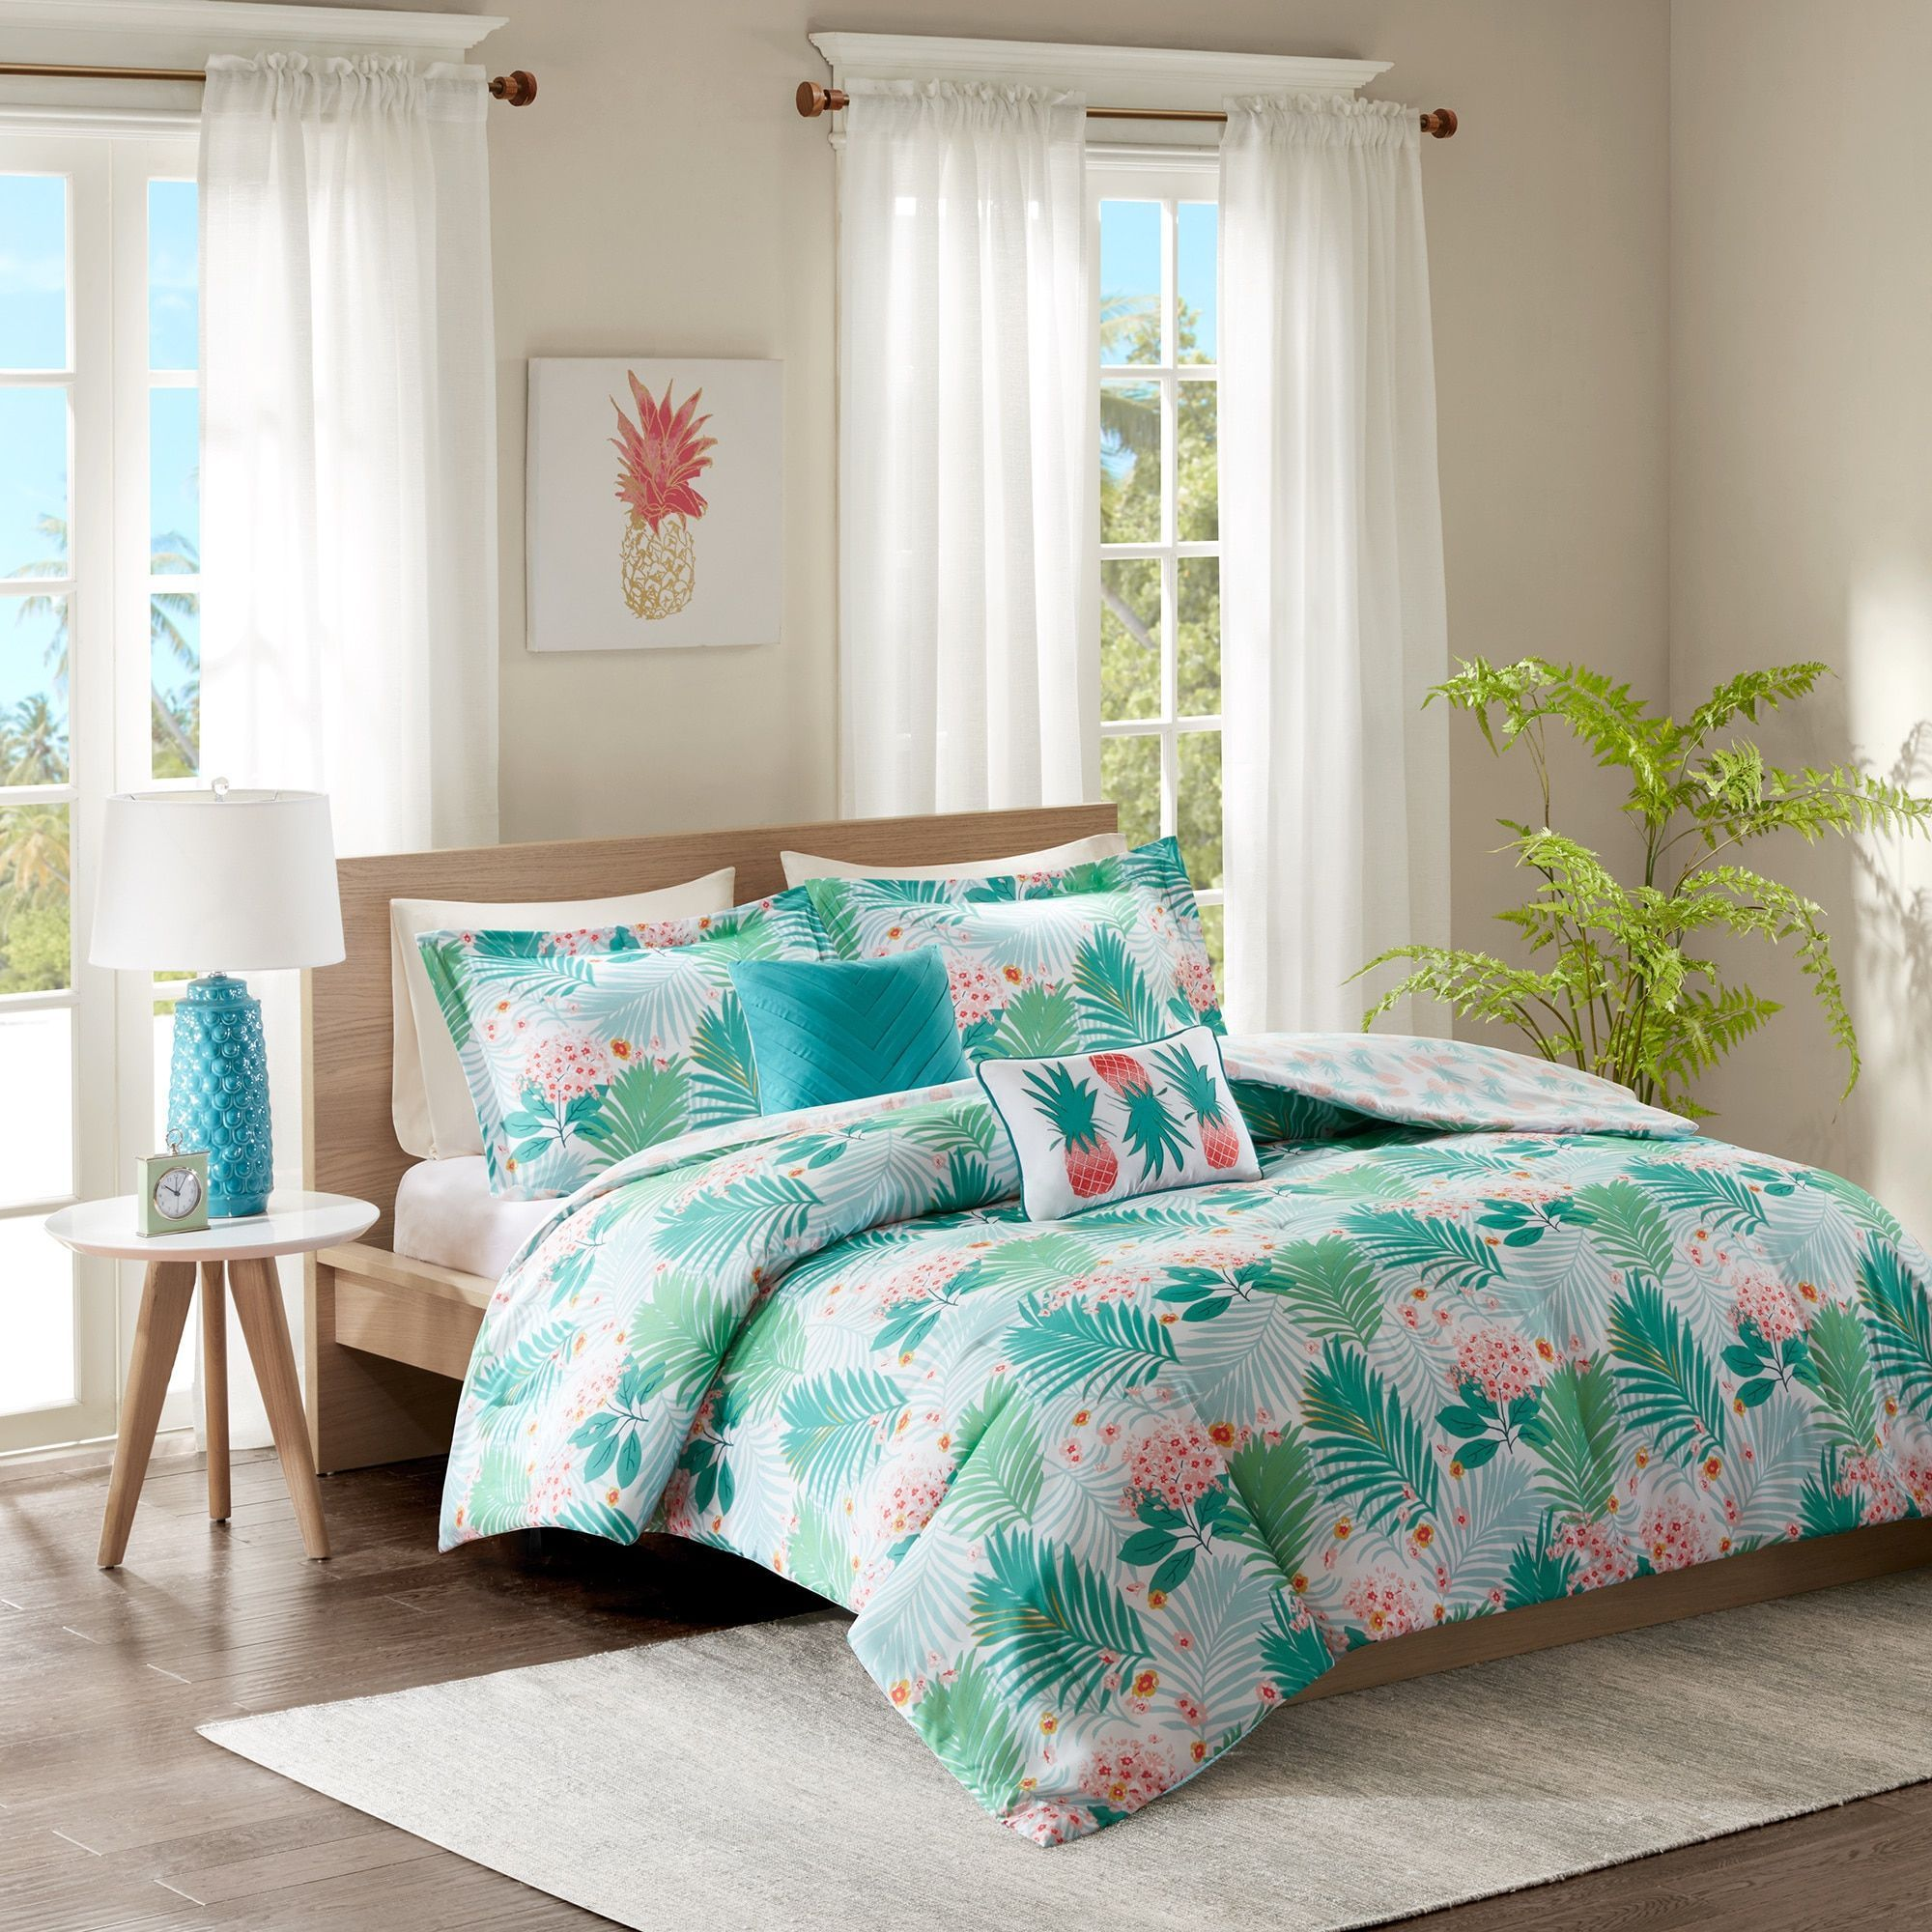 Intelligent Design Lilo Aqua Printed Comforter Set